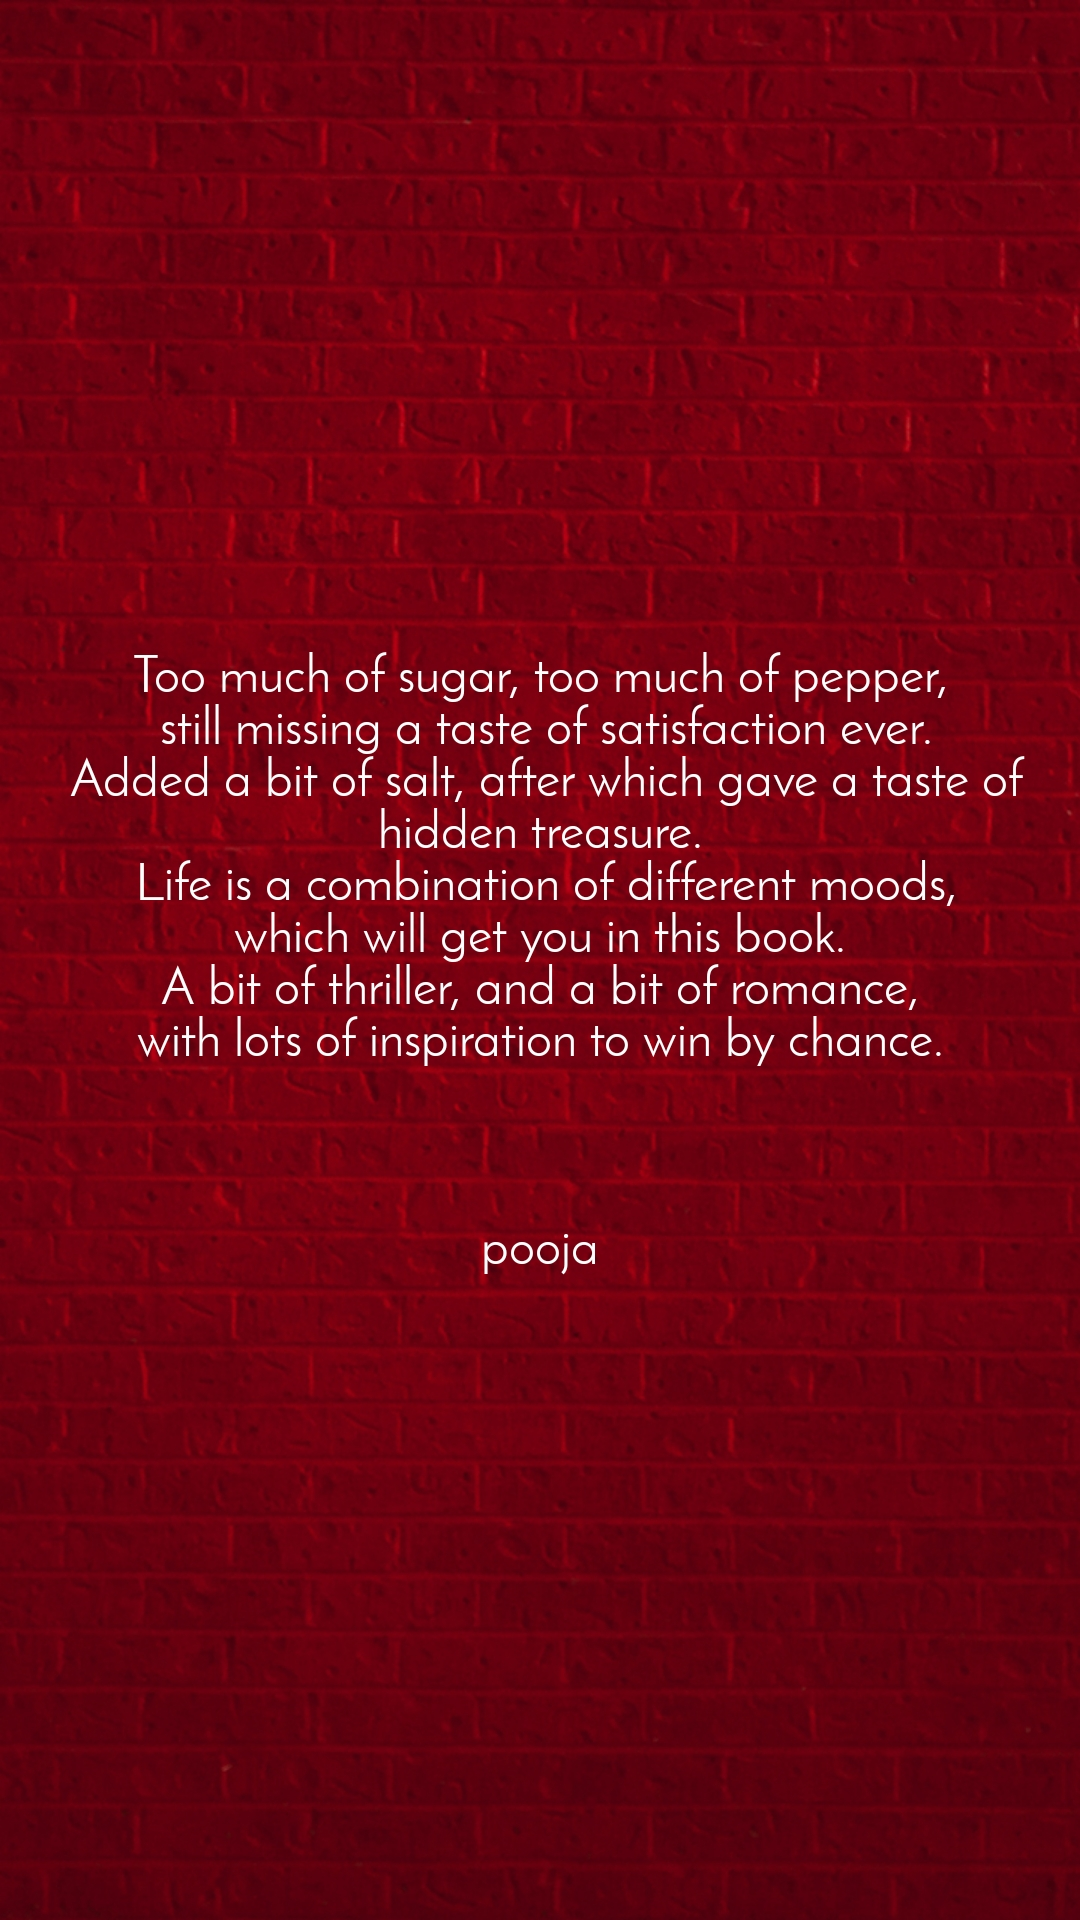 Too much of sugar, too much of pepper,  still missing a taste of satisfaction ever.  Added a bit of salt, after which gave a taste of hidden treasure.  Life is a combination of different moods,  which will get you in this book.  A bit of thriller, and a bit of romance, with lots of inspiration to win by chance.    pooja